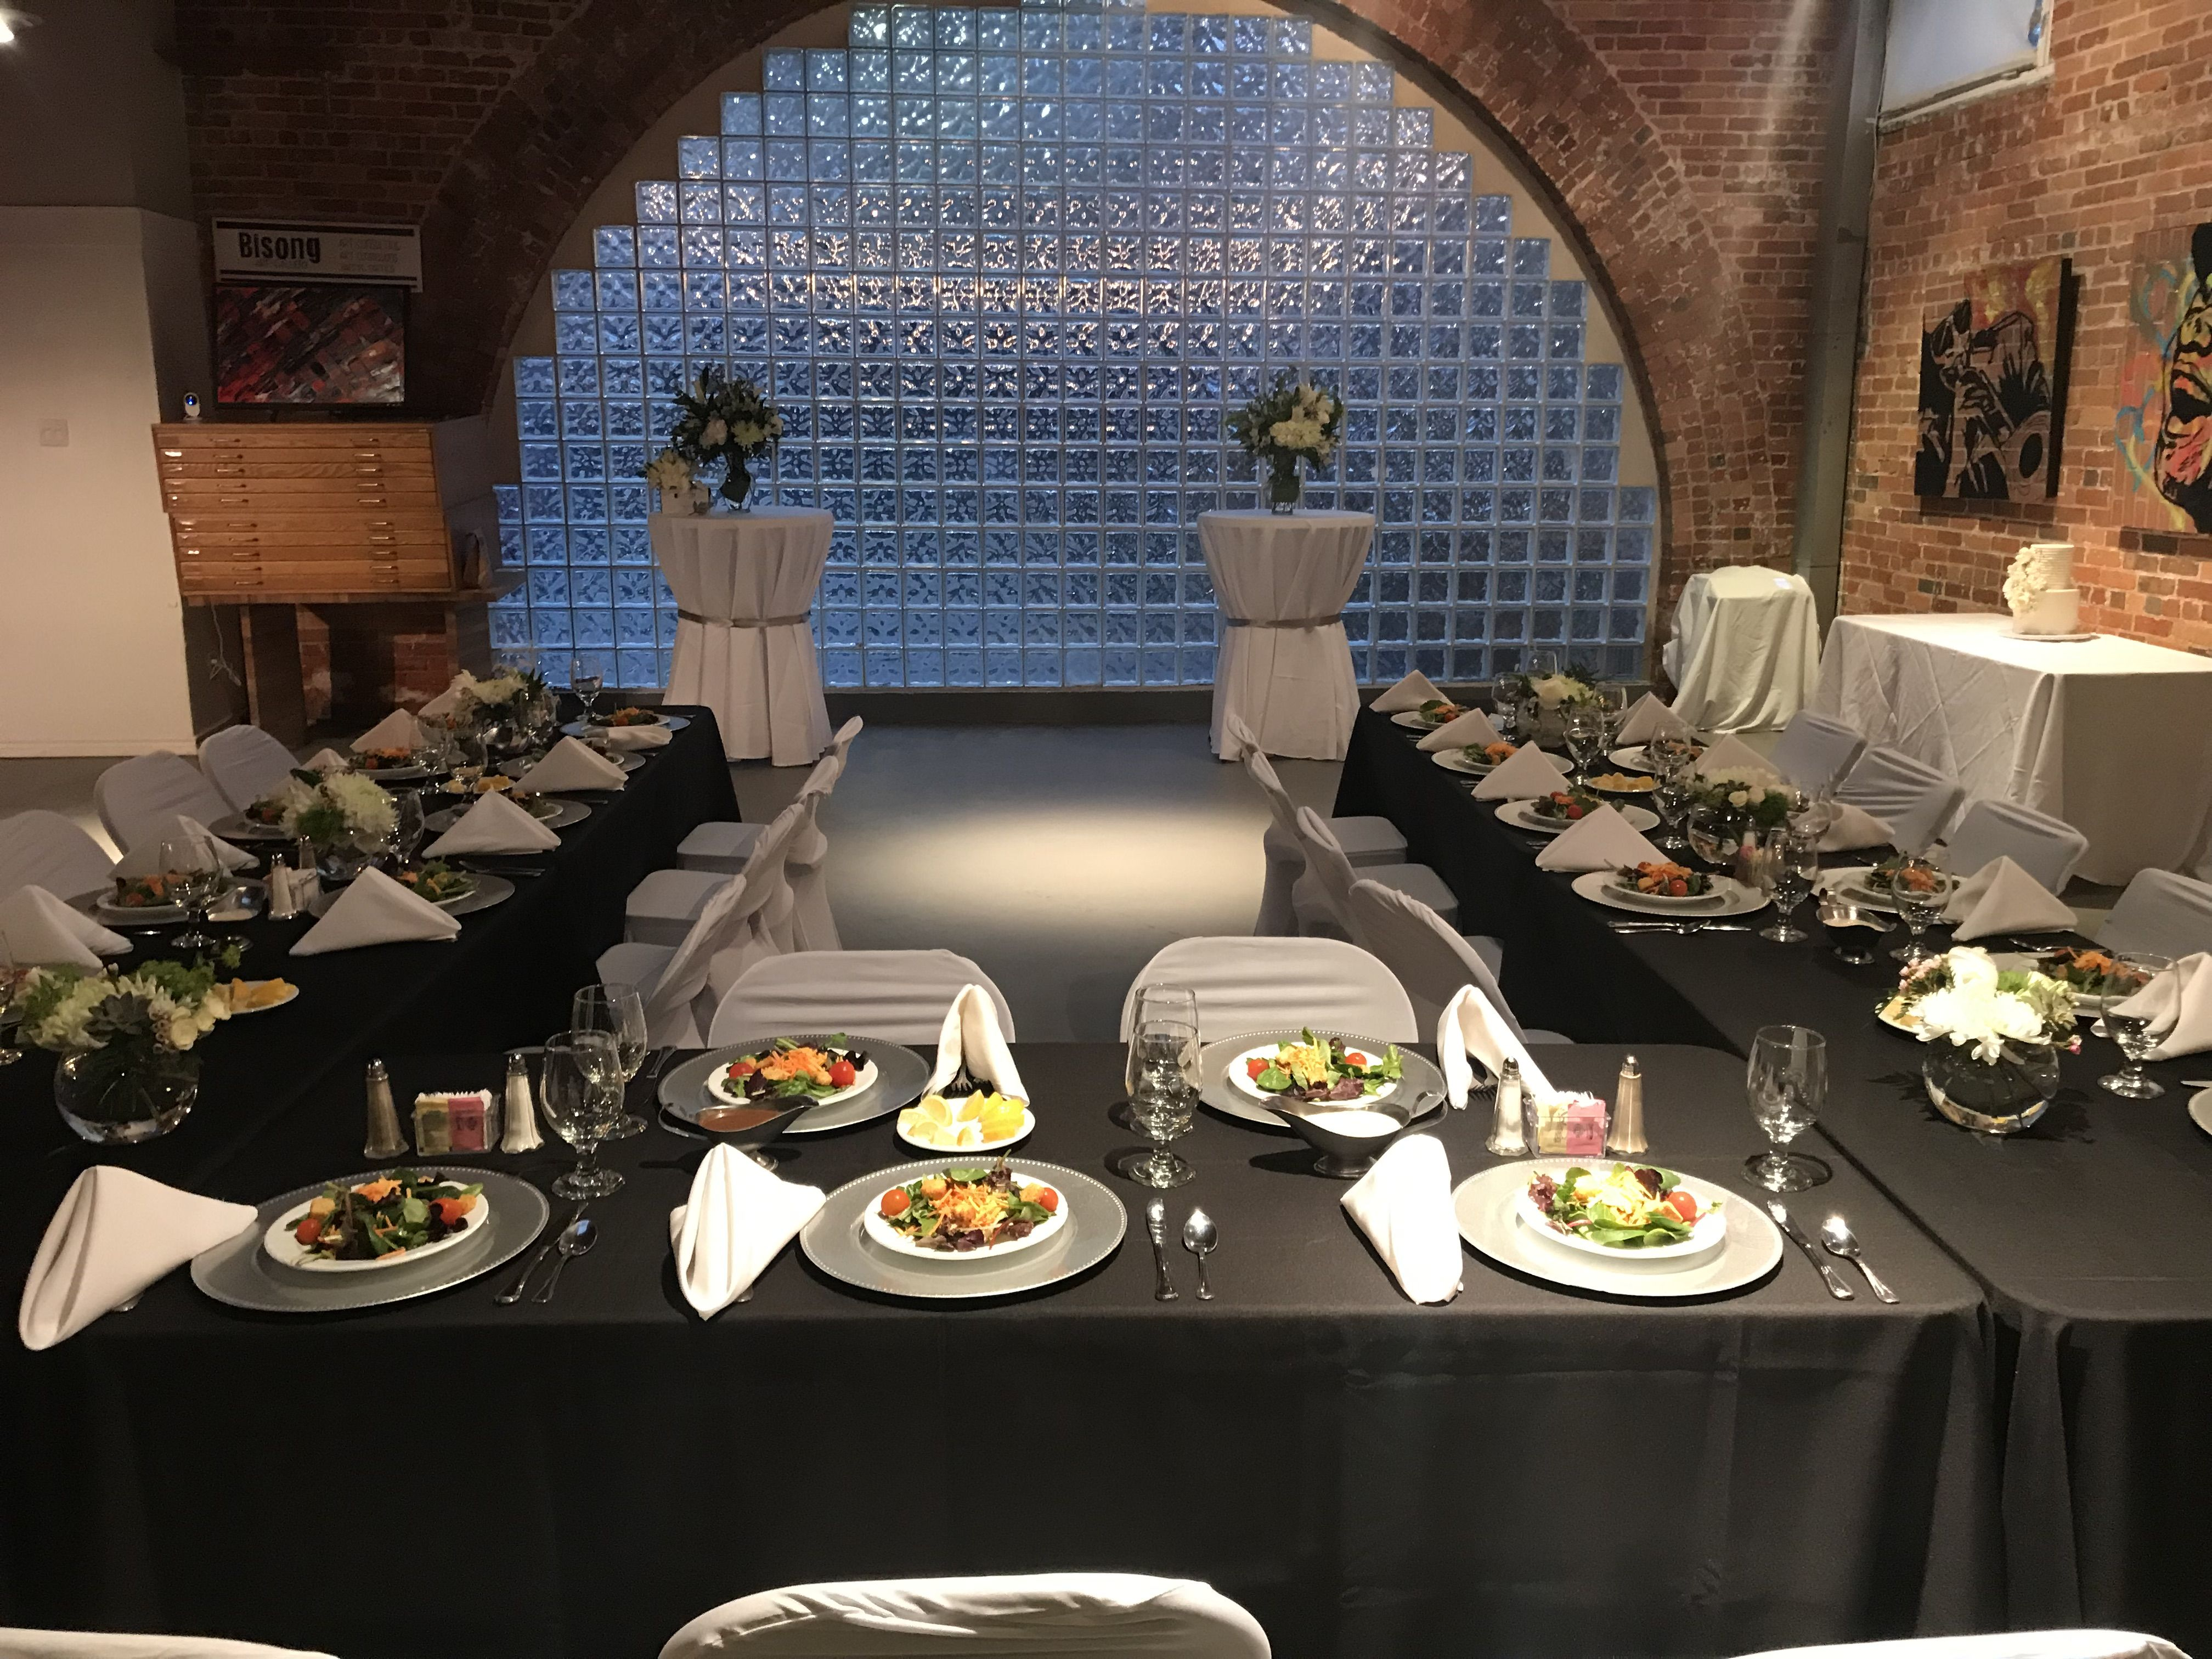 A Small Wedding Reception with preset salads and chargers in black and white by Catering By Norris